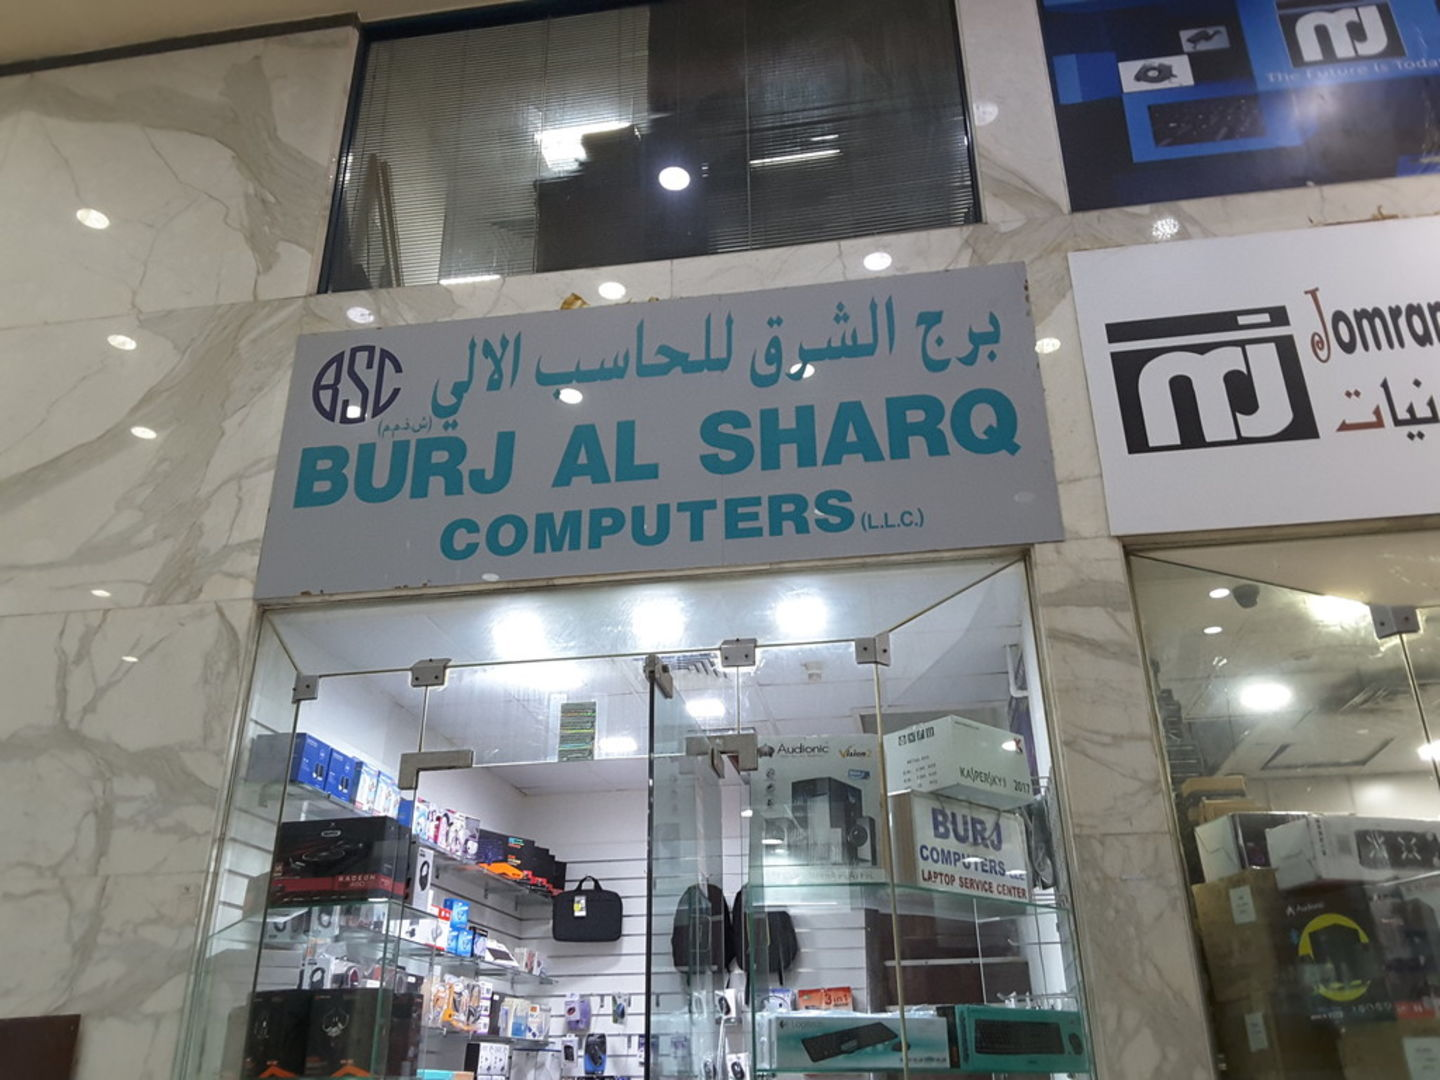 HiDubai-business-burj-al-sharq-computers-b2b-services-distributors-wholesalers-al-fahidi-al-souq-al-kabeer-dubai-2